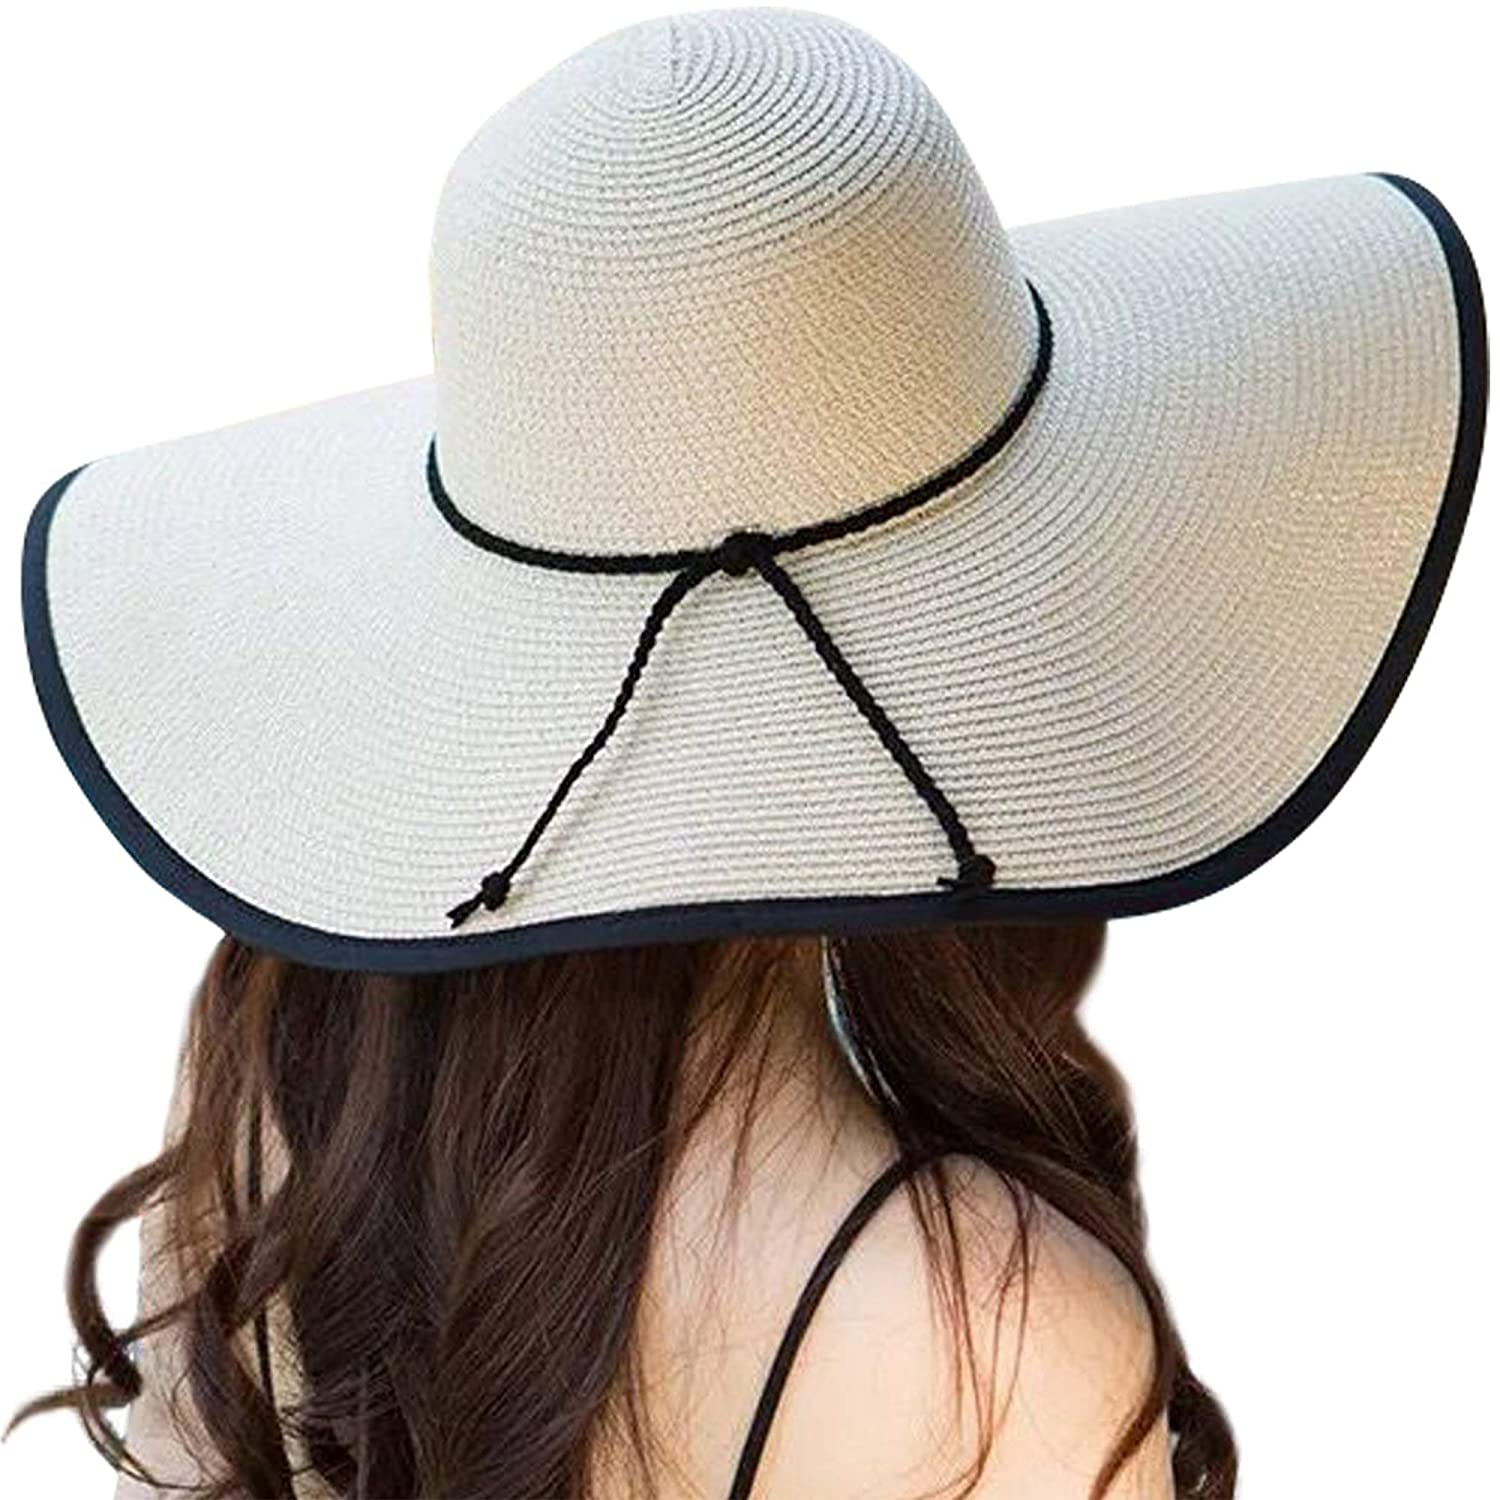 d3ea126cb4c84 Womens Big Bowknot Straw Hat Floppy Foldable Roll up Beach Cap Sun Hat UPF  50+ (A Beige 5.9